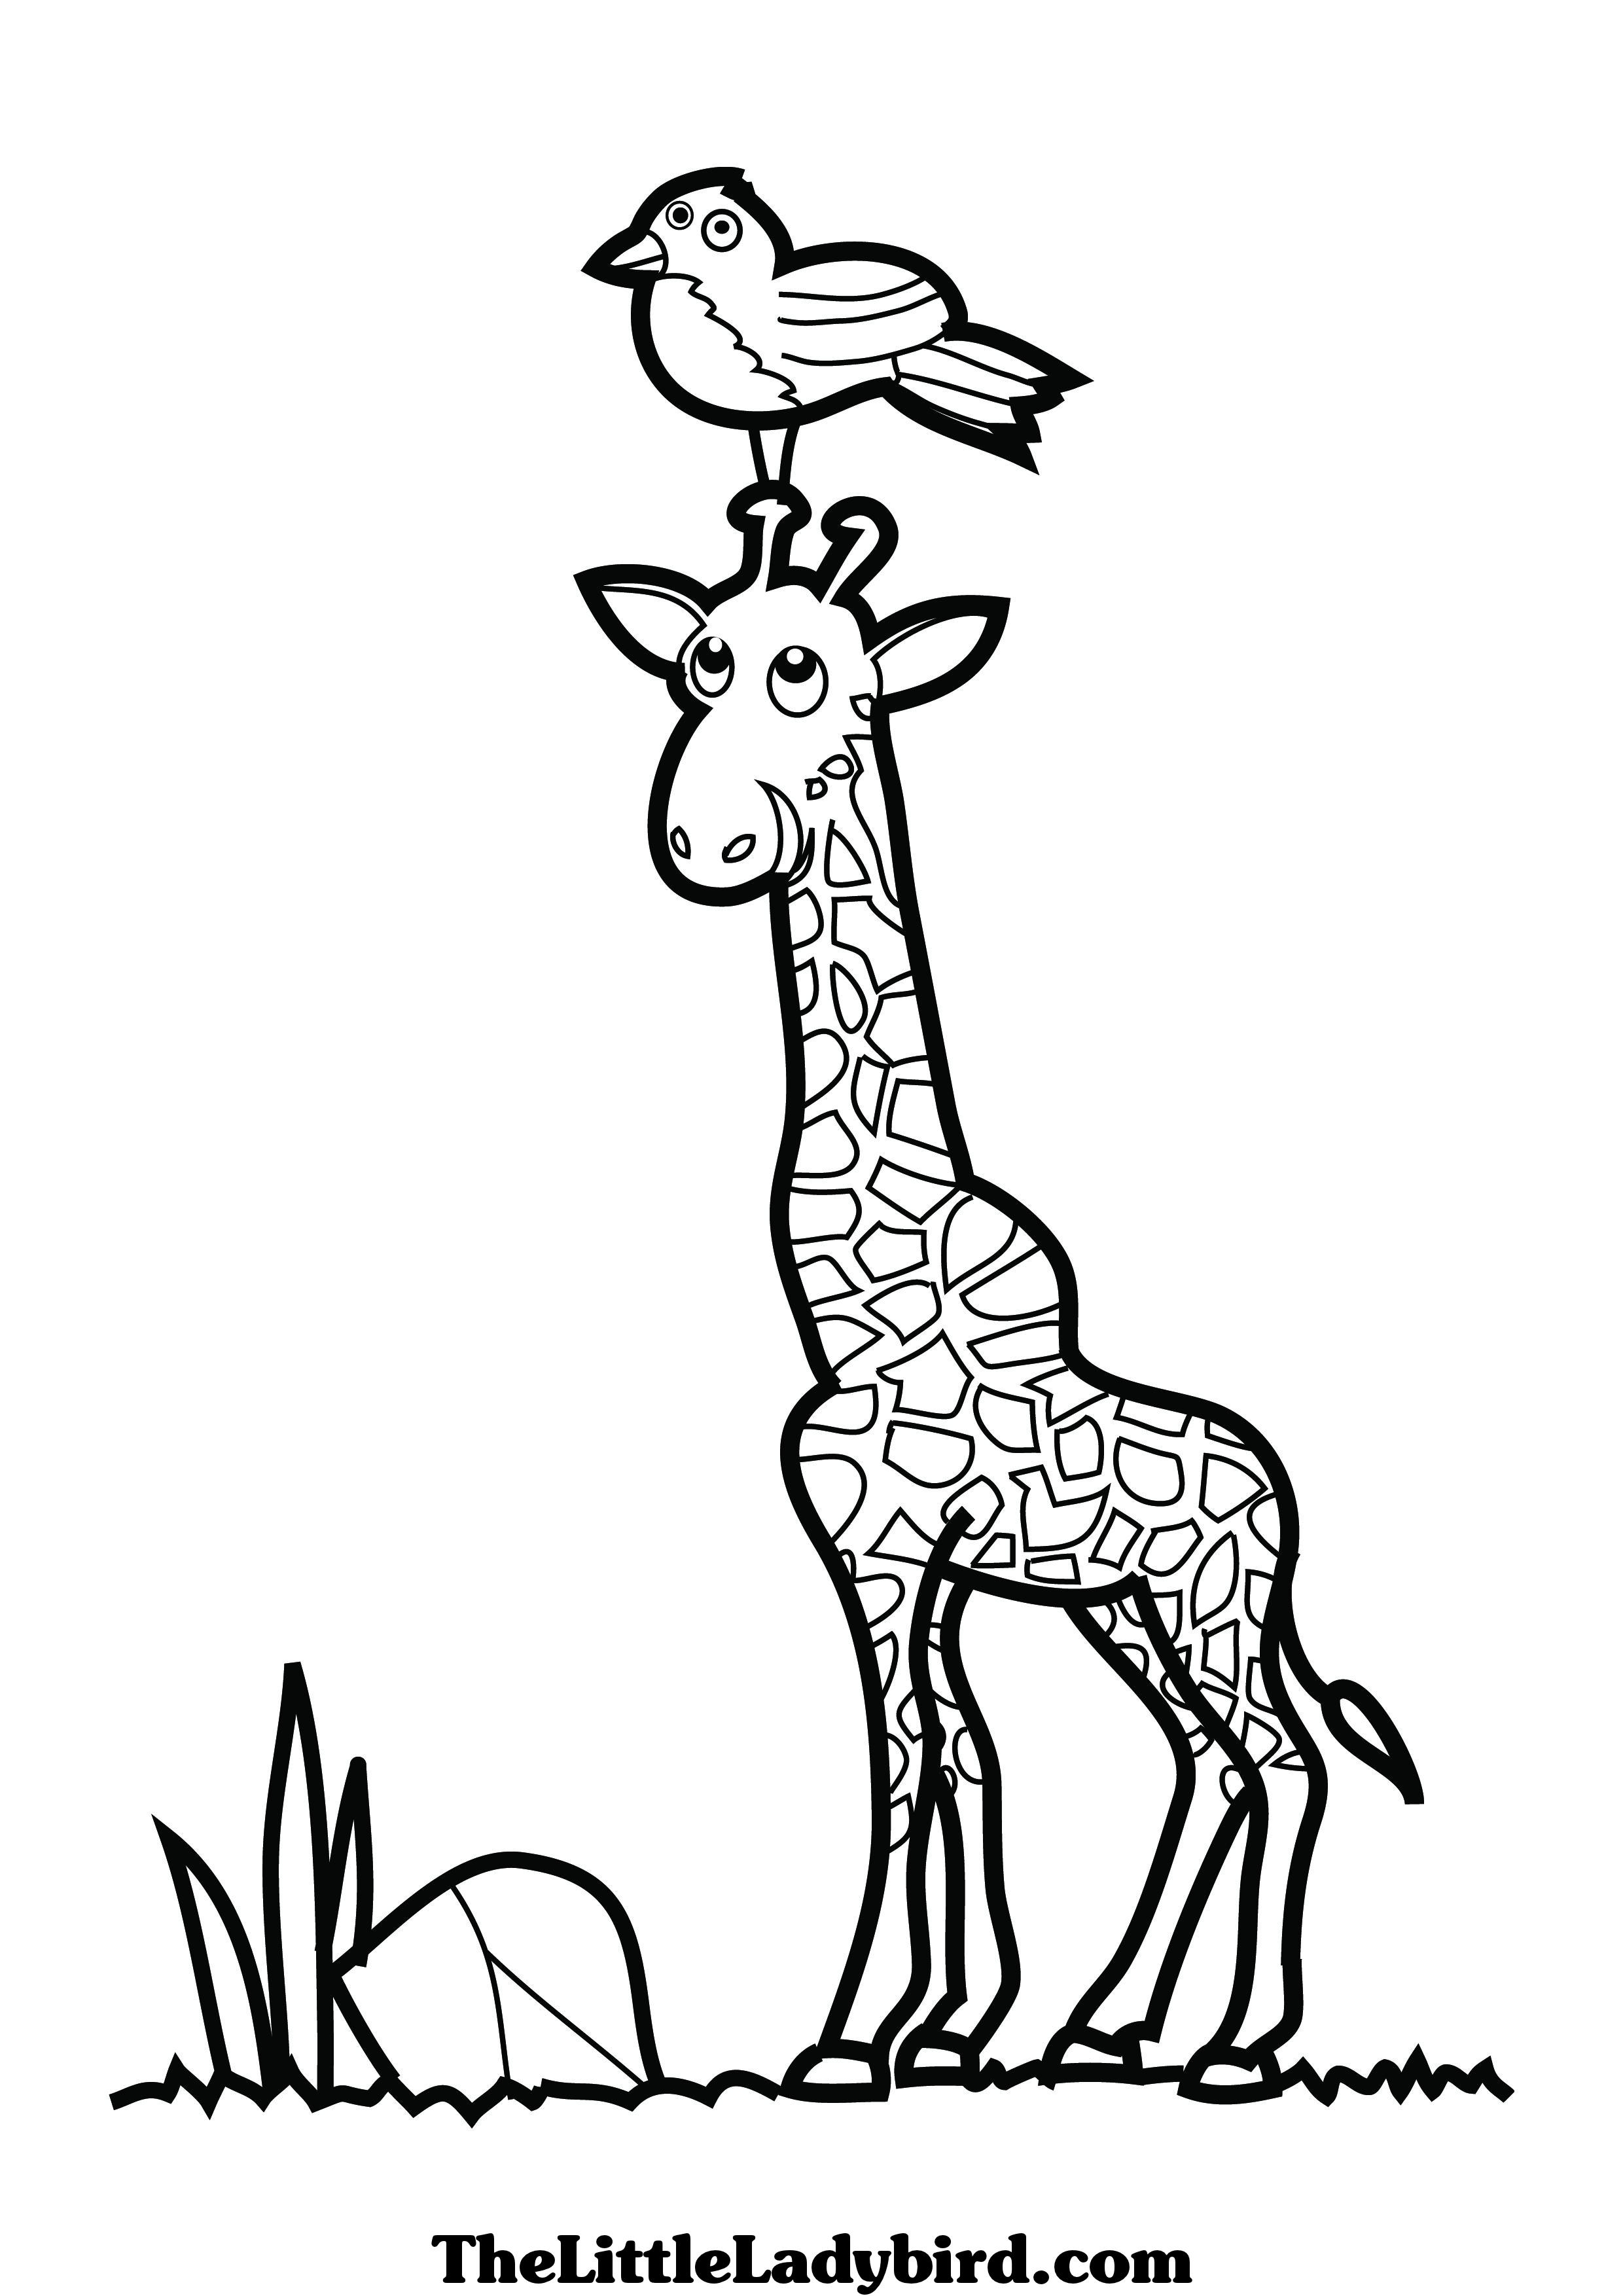 Free coloring page giraffe - Giraffe 20head 20coloring 20pages